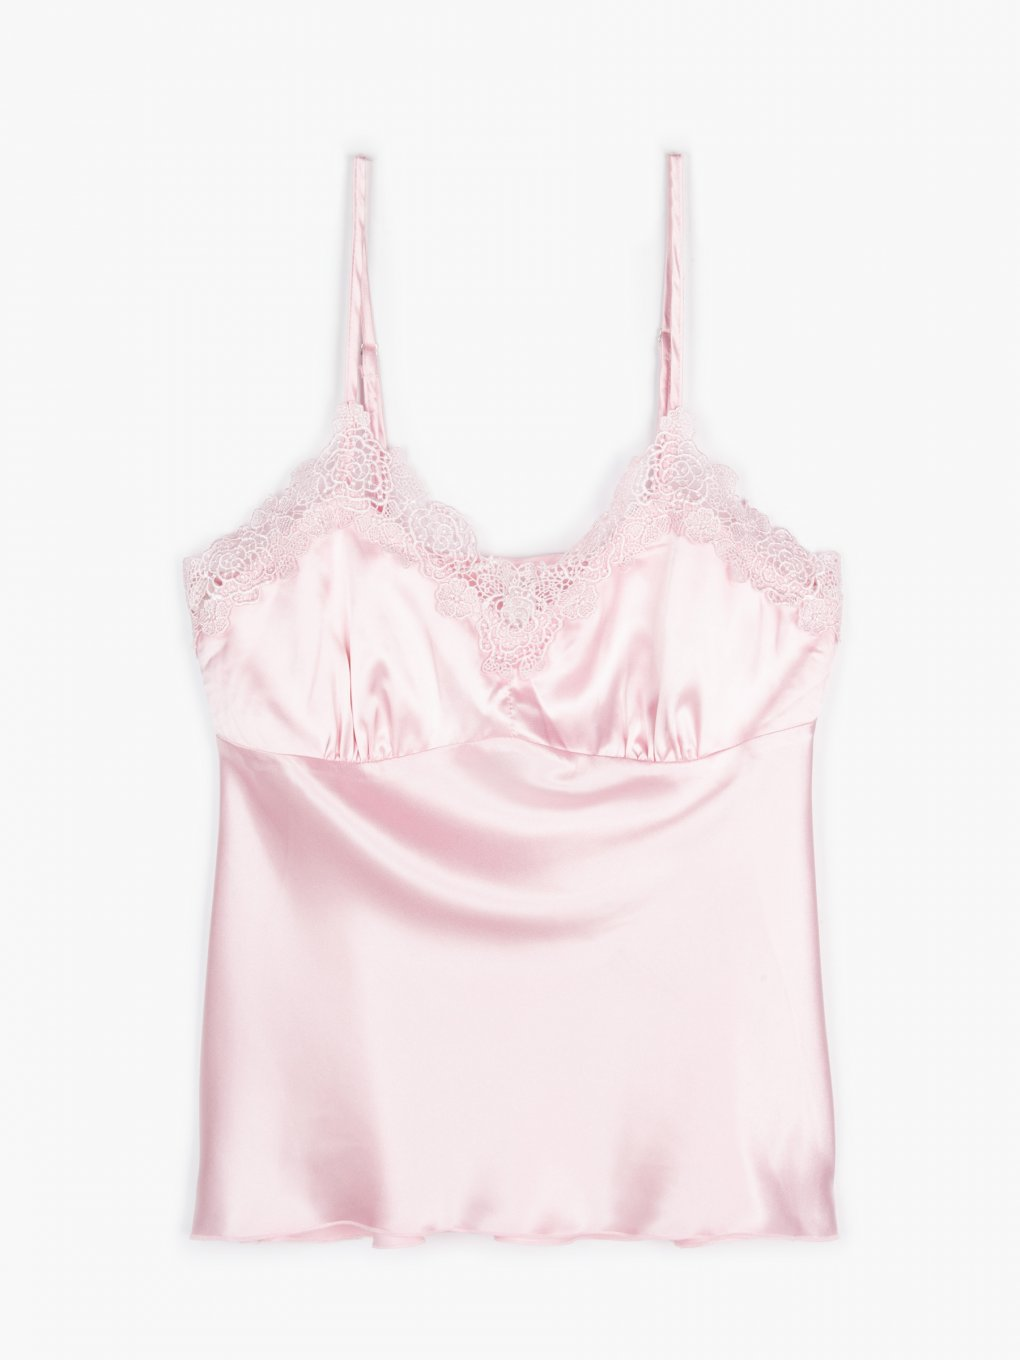 Satin pyjama camisole with lace detail